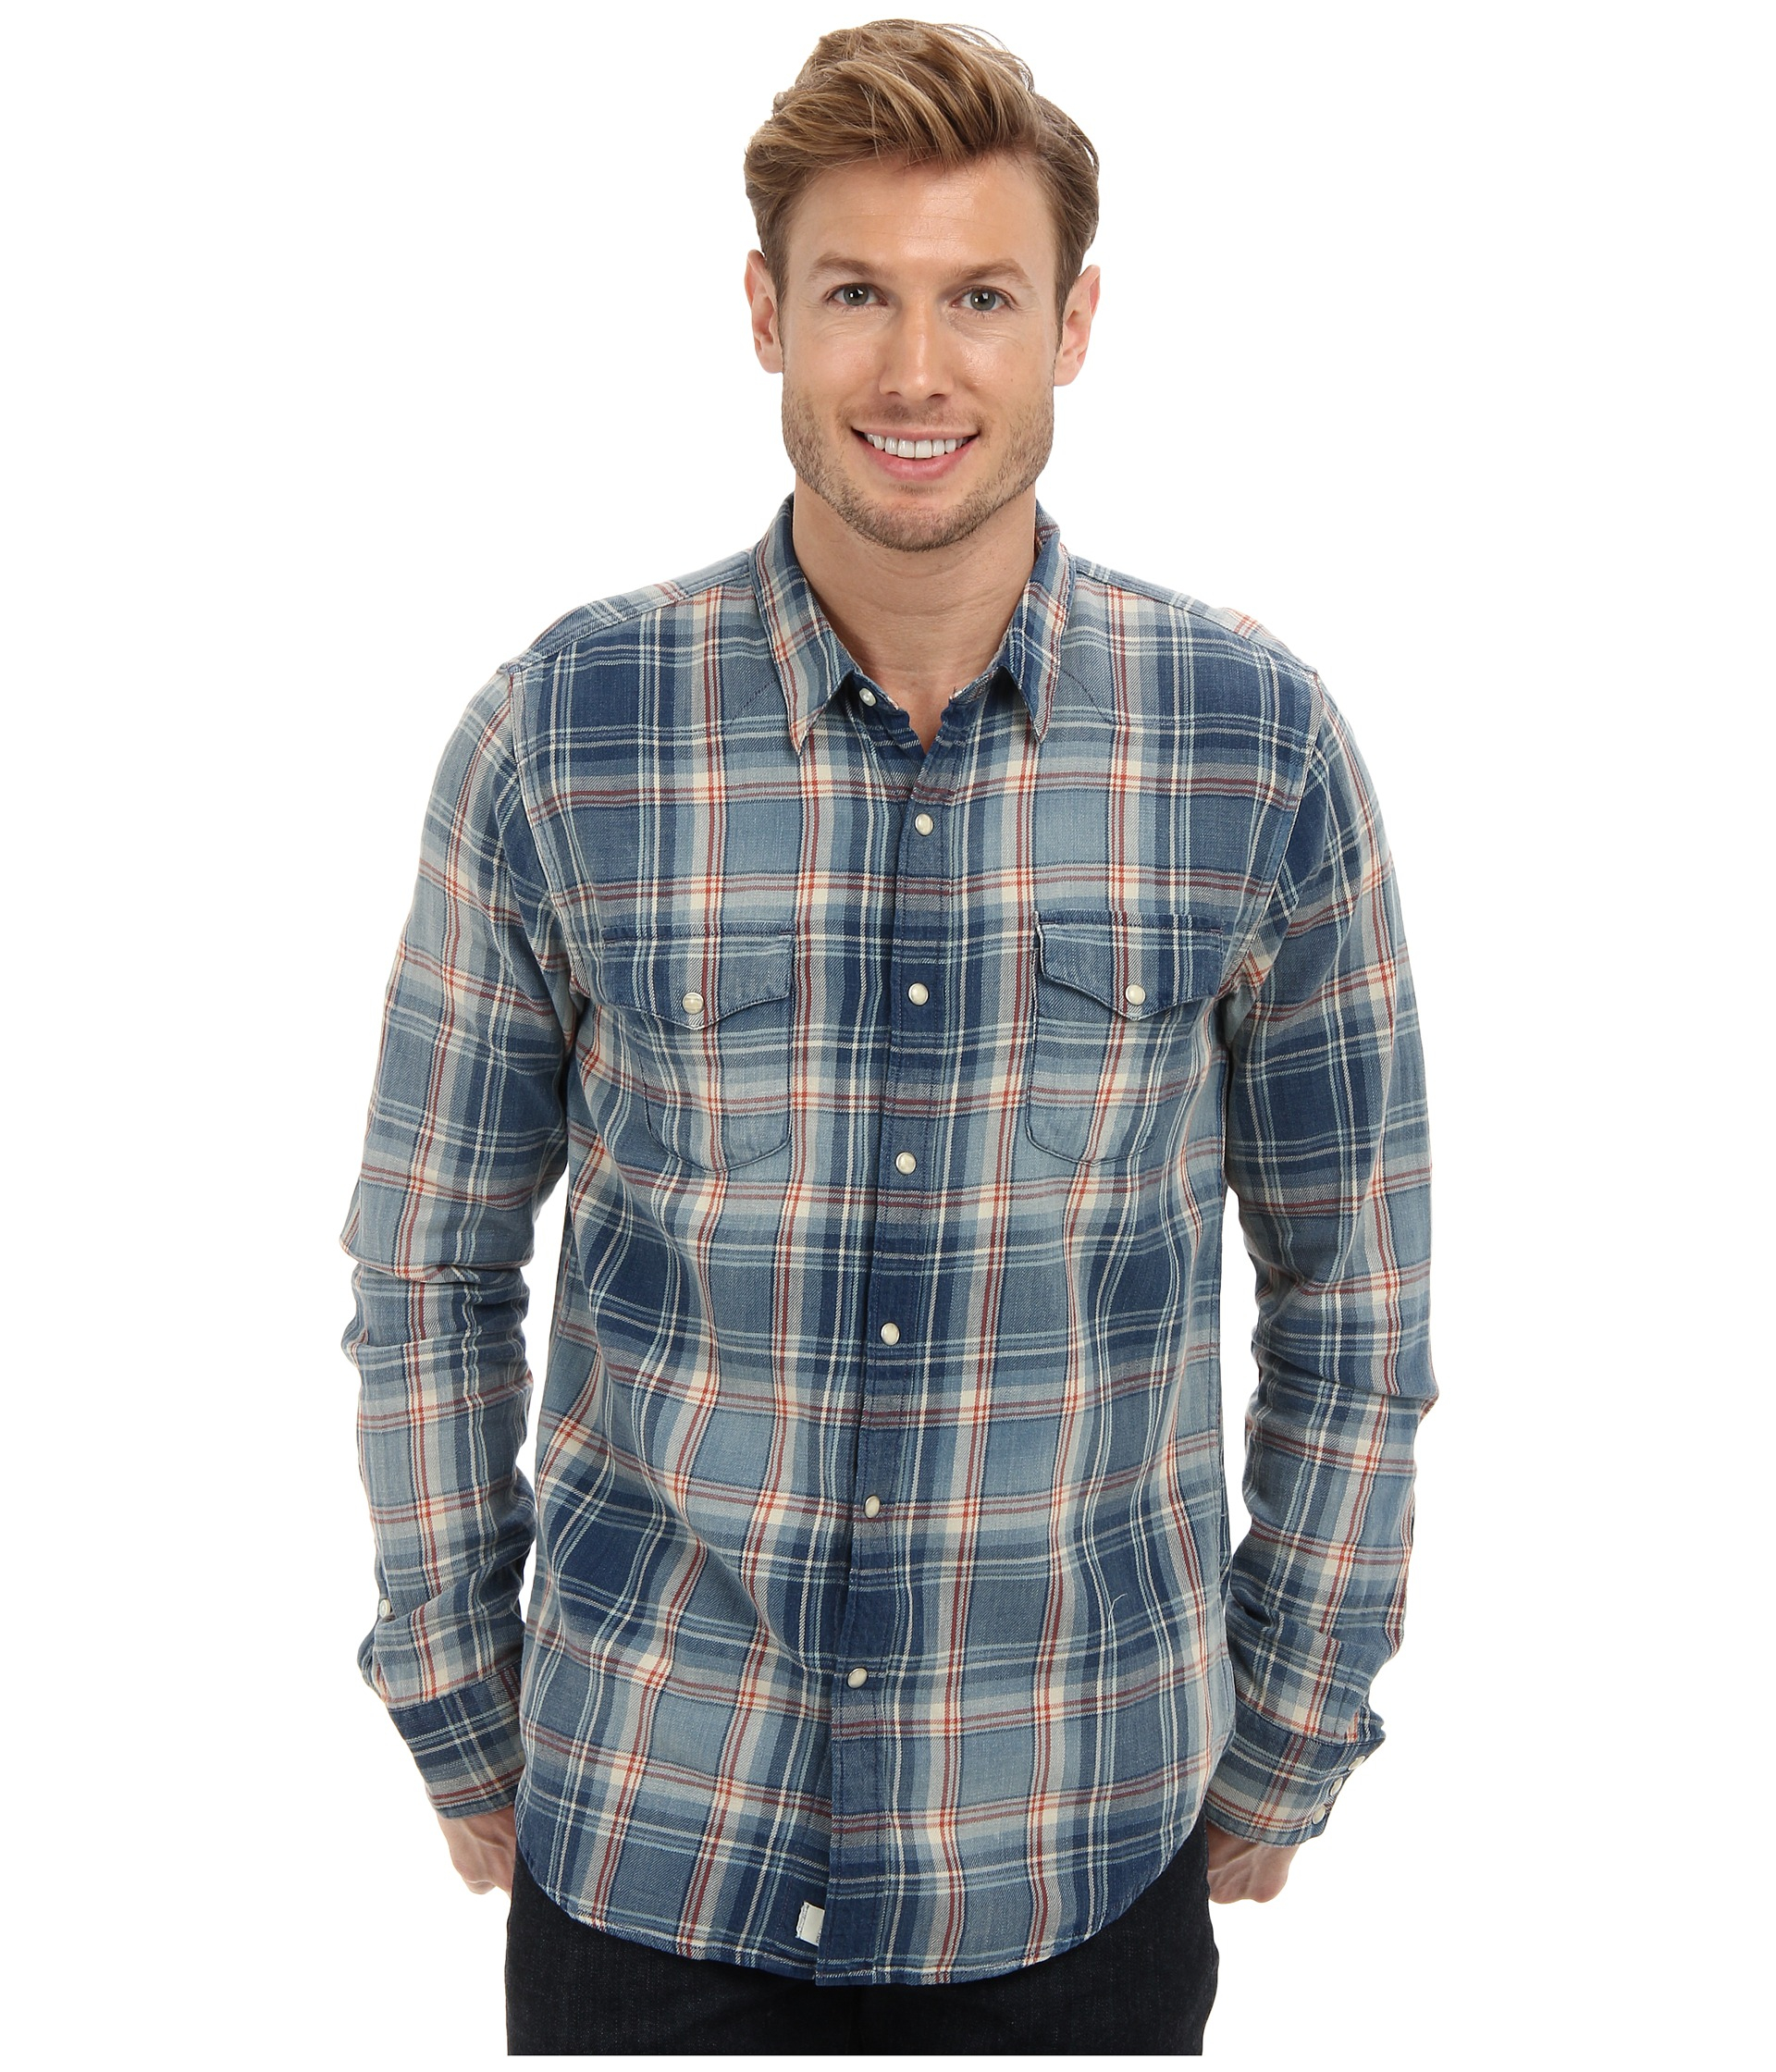 6e6f768125 Lyst - Lucky Brand Indigo Plaid Western Shirt in Blue for Men